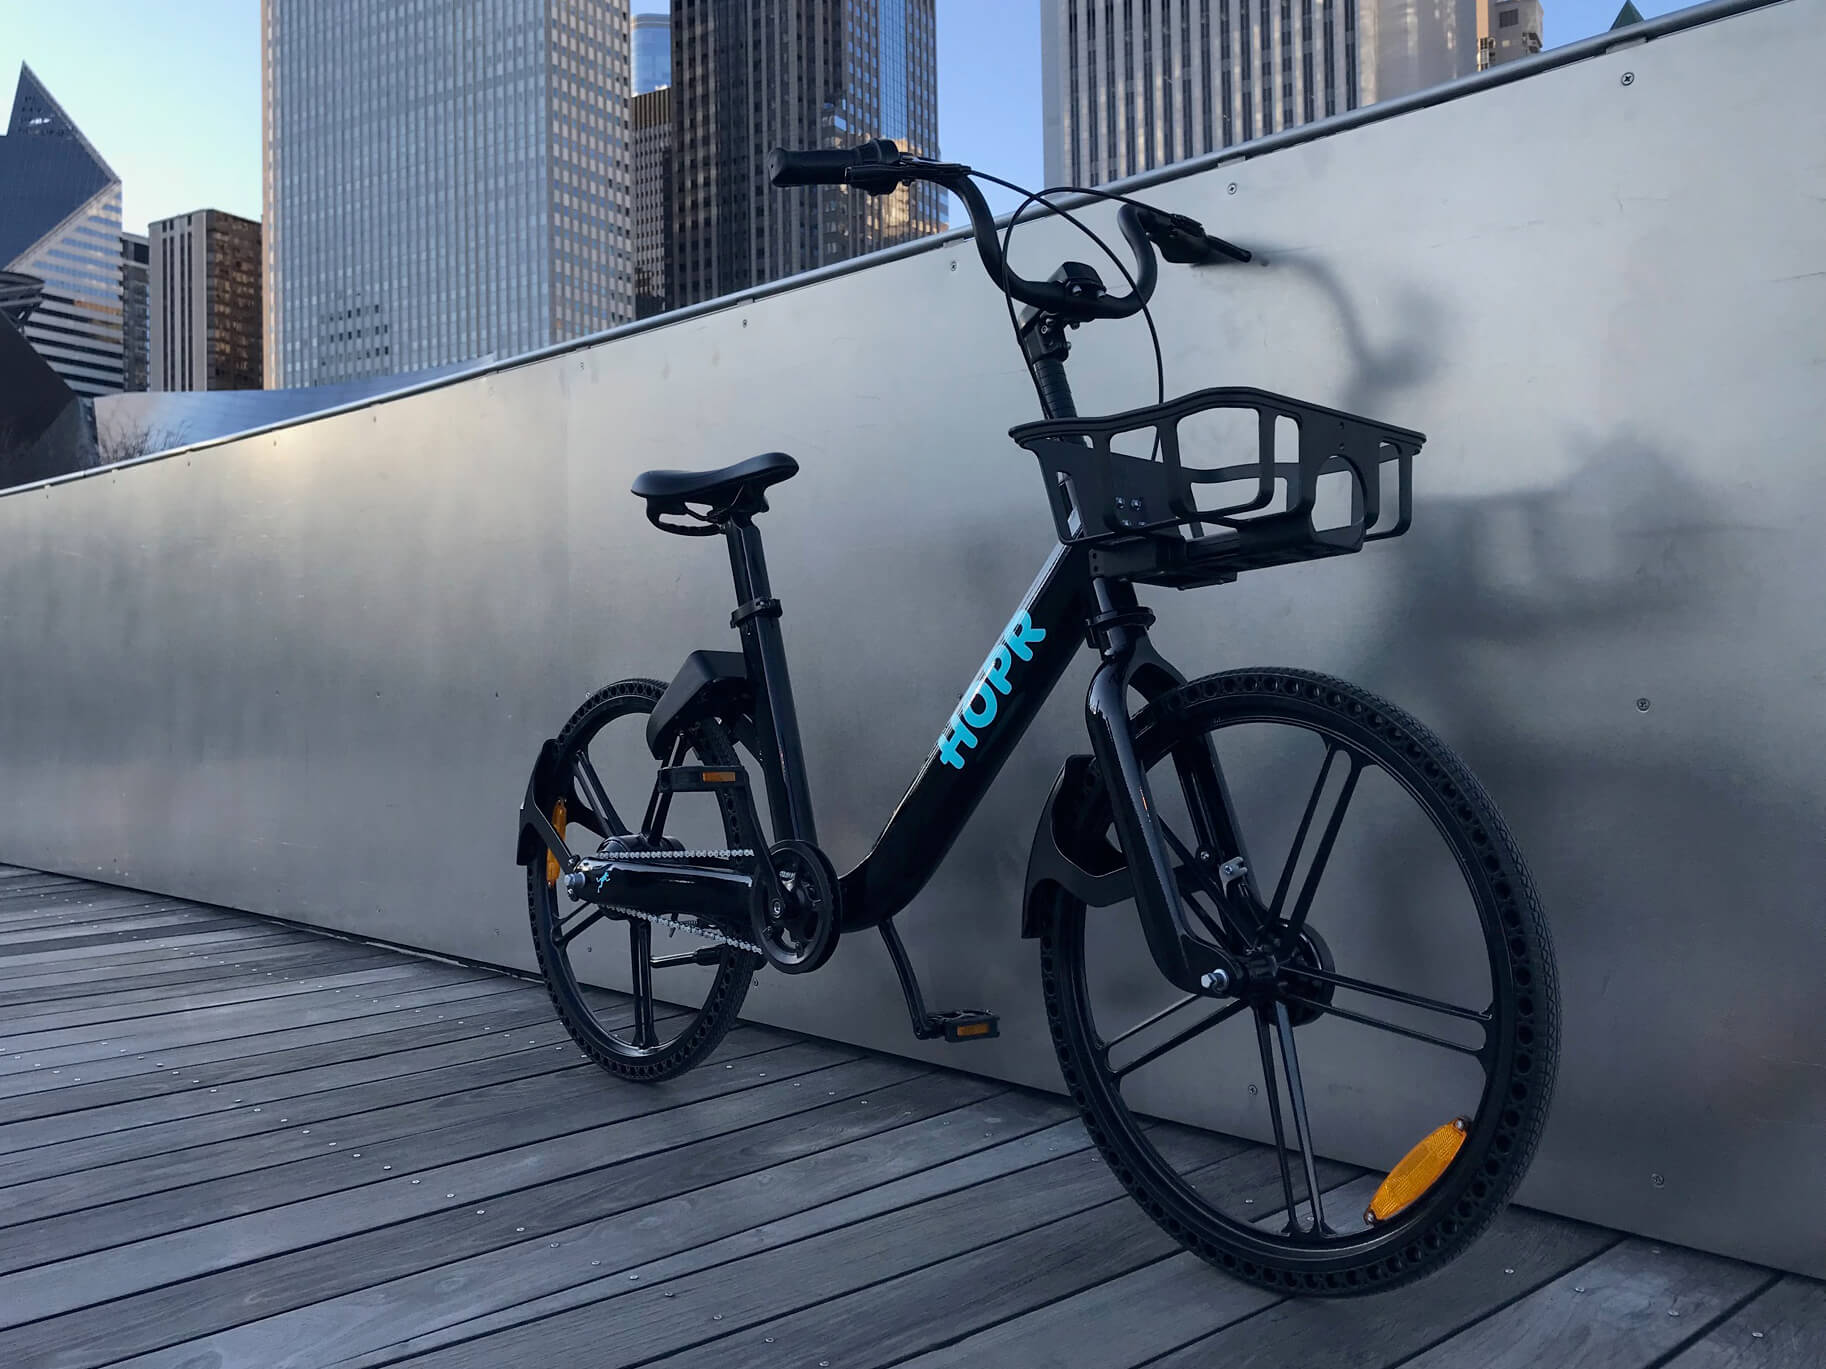 HOPR Introduces E-Bike for Bike Share with Portable Power Pack